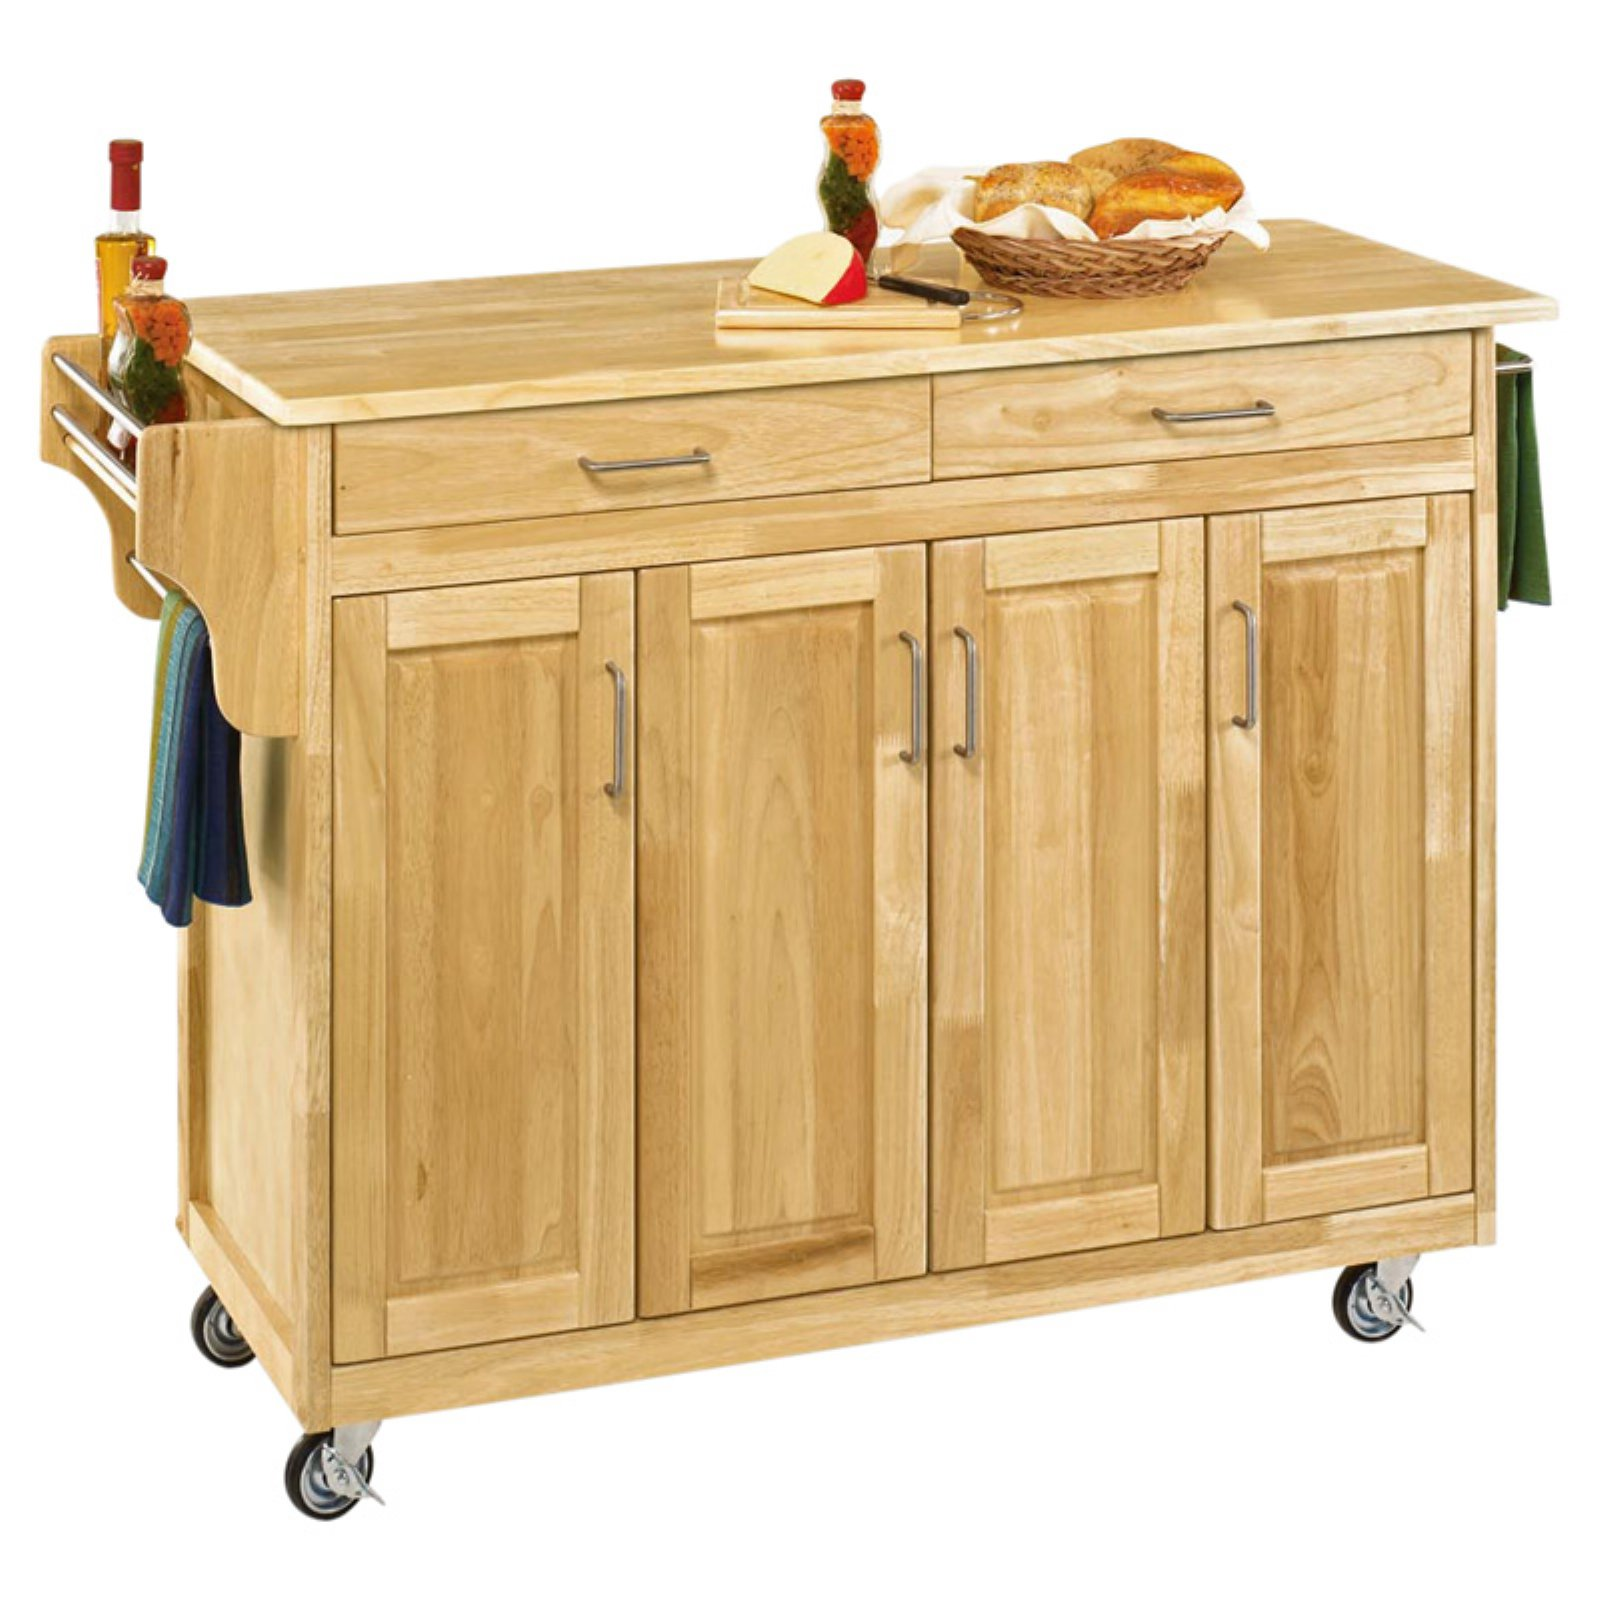 Home Styles Large Create-a-Cart Kitchen Island